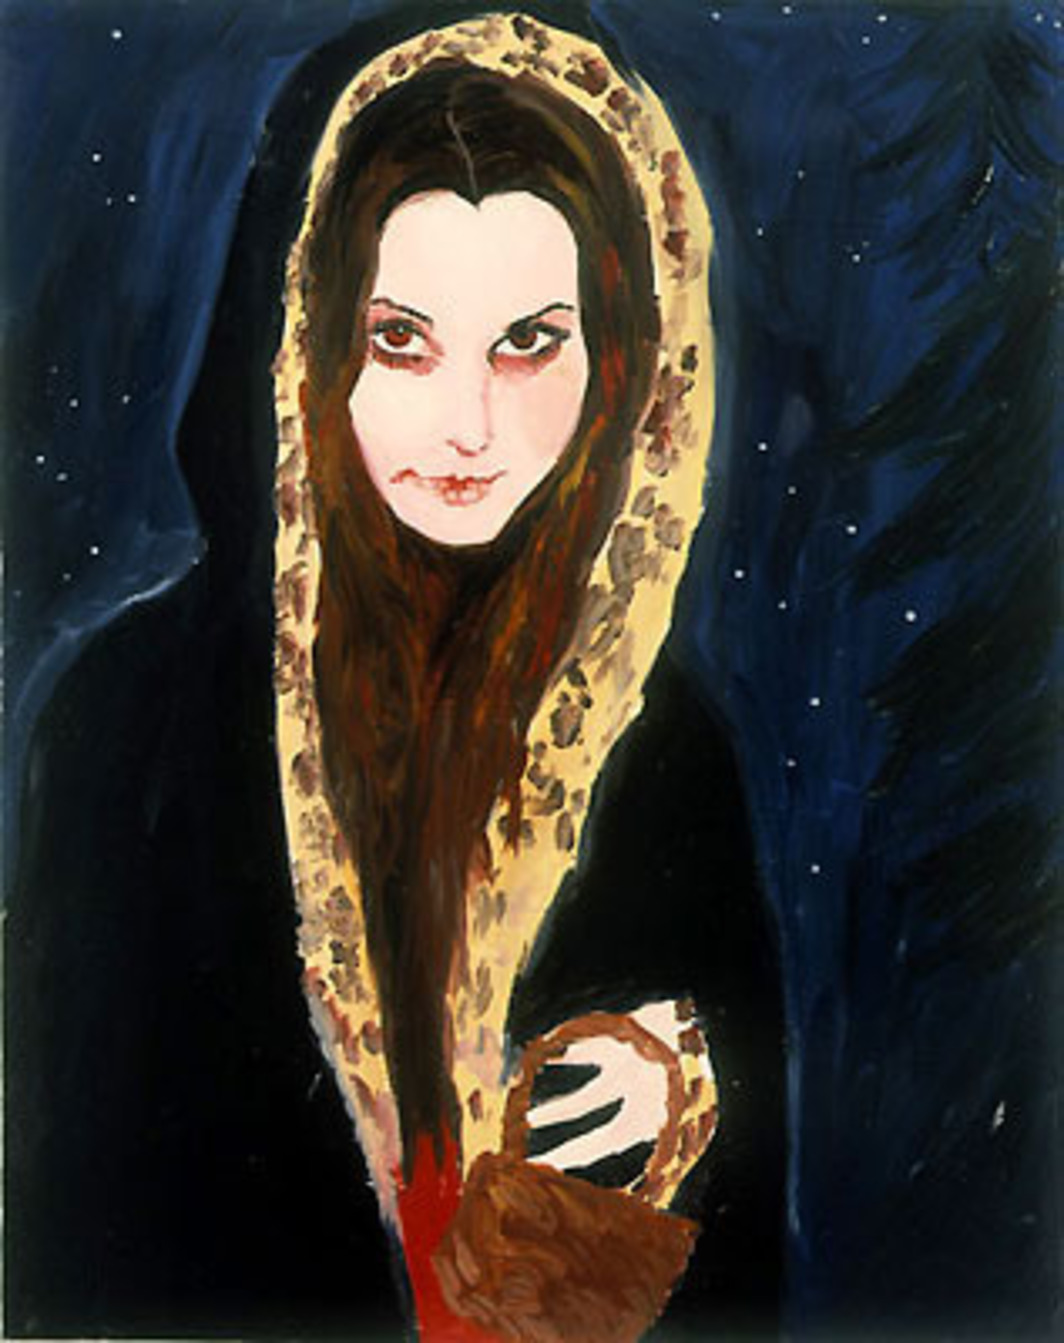 "Karen Kilimnik, Little Red Riding Hood Vampire, 2001, water-soluble oil color on canvas, 20 x 16""."